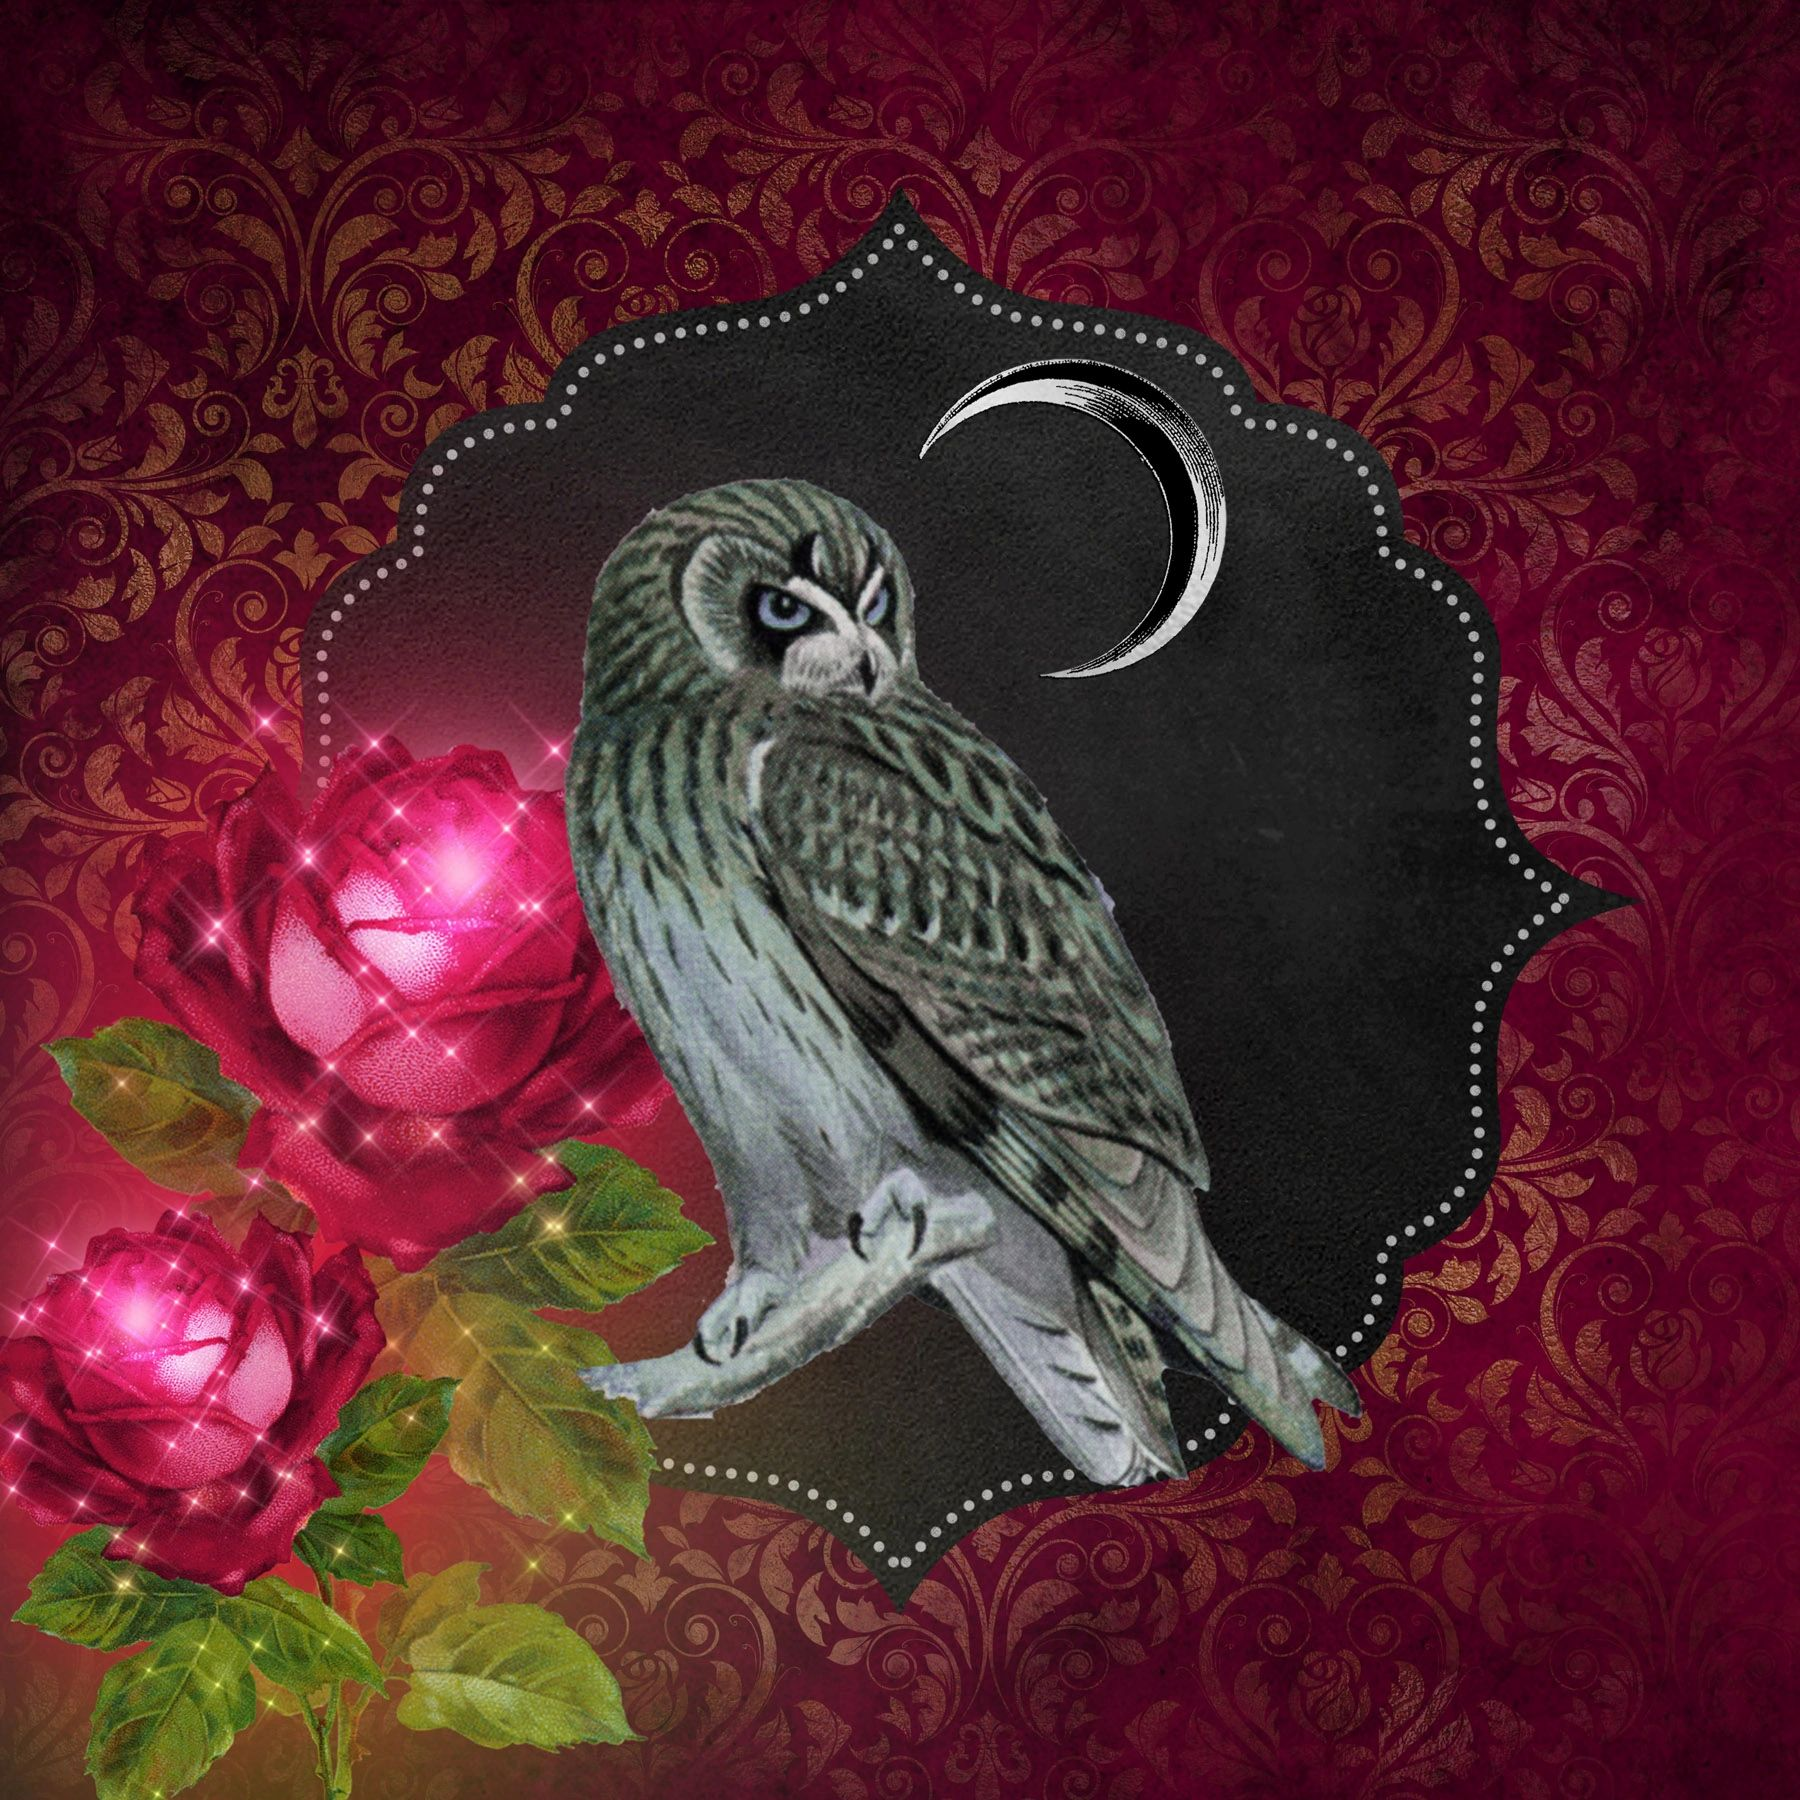 Silver Moon Adornments - Metaphysical Gift Shop, Tarot Readings